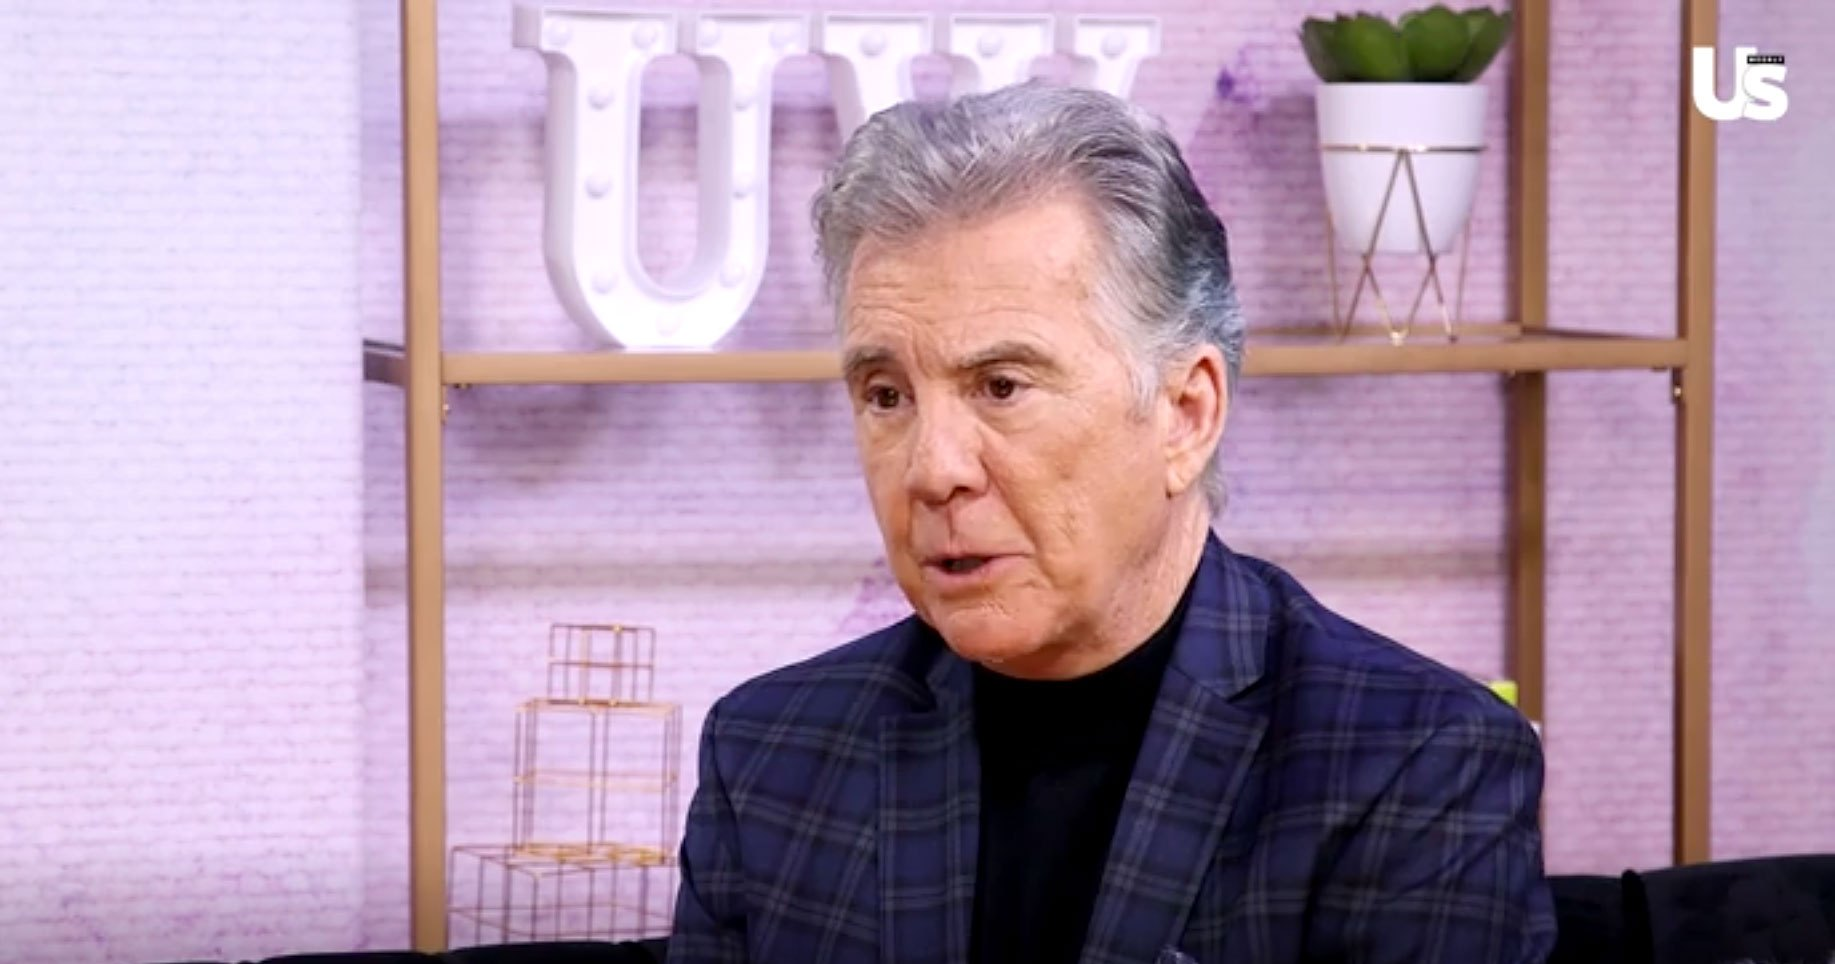 'America's Most Wanted' Host John Walsh's Advice on 'Dirty John' Types: 'If He Seems Too Good to Be True, He Is'